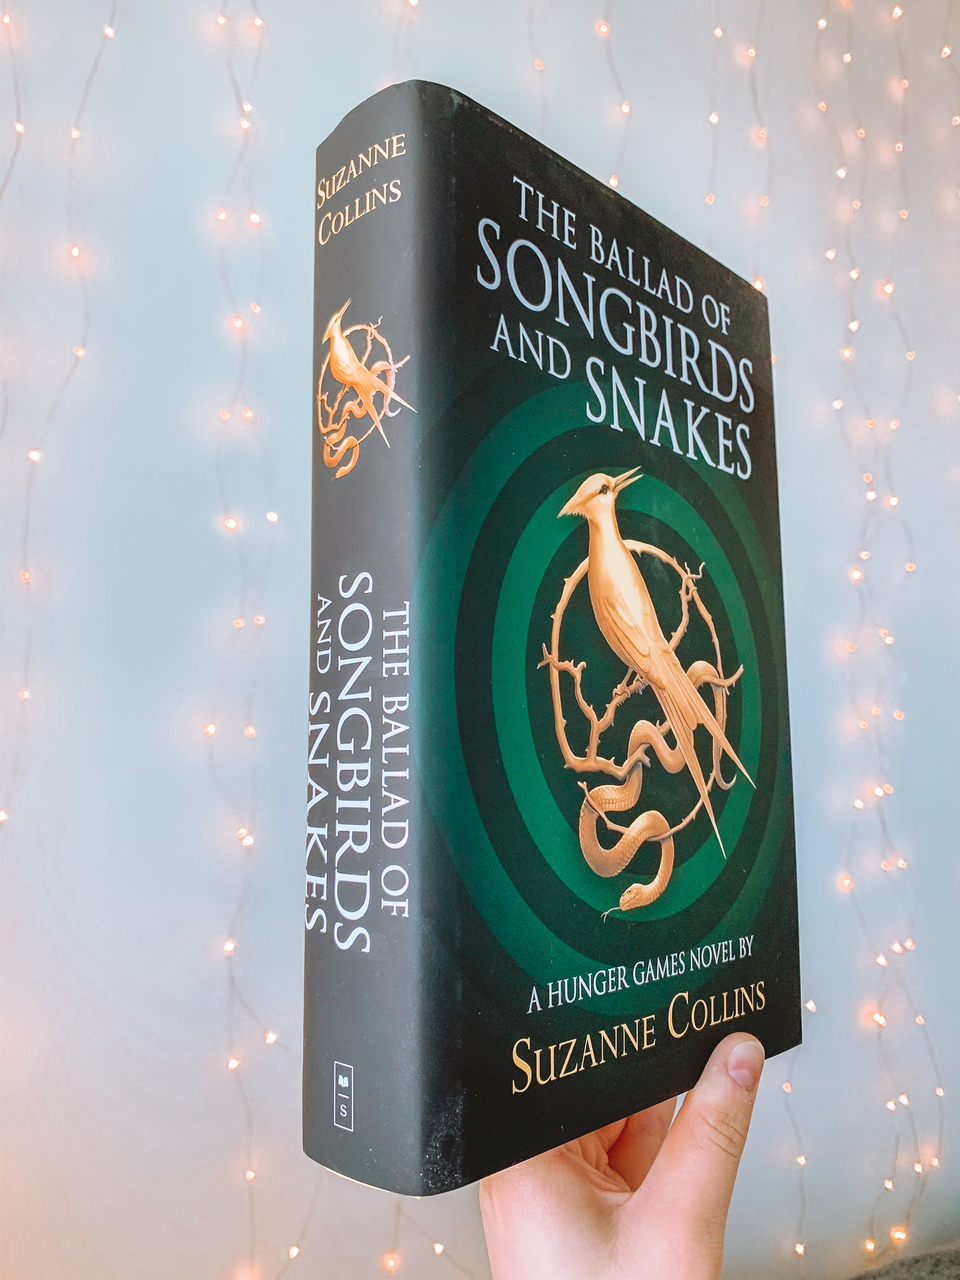 20 books to read in 2020 The Ballad of Songbirds and Snakes front cover Suzanne Collins The Hunger Games Prequel